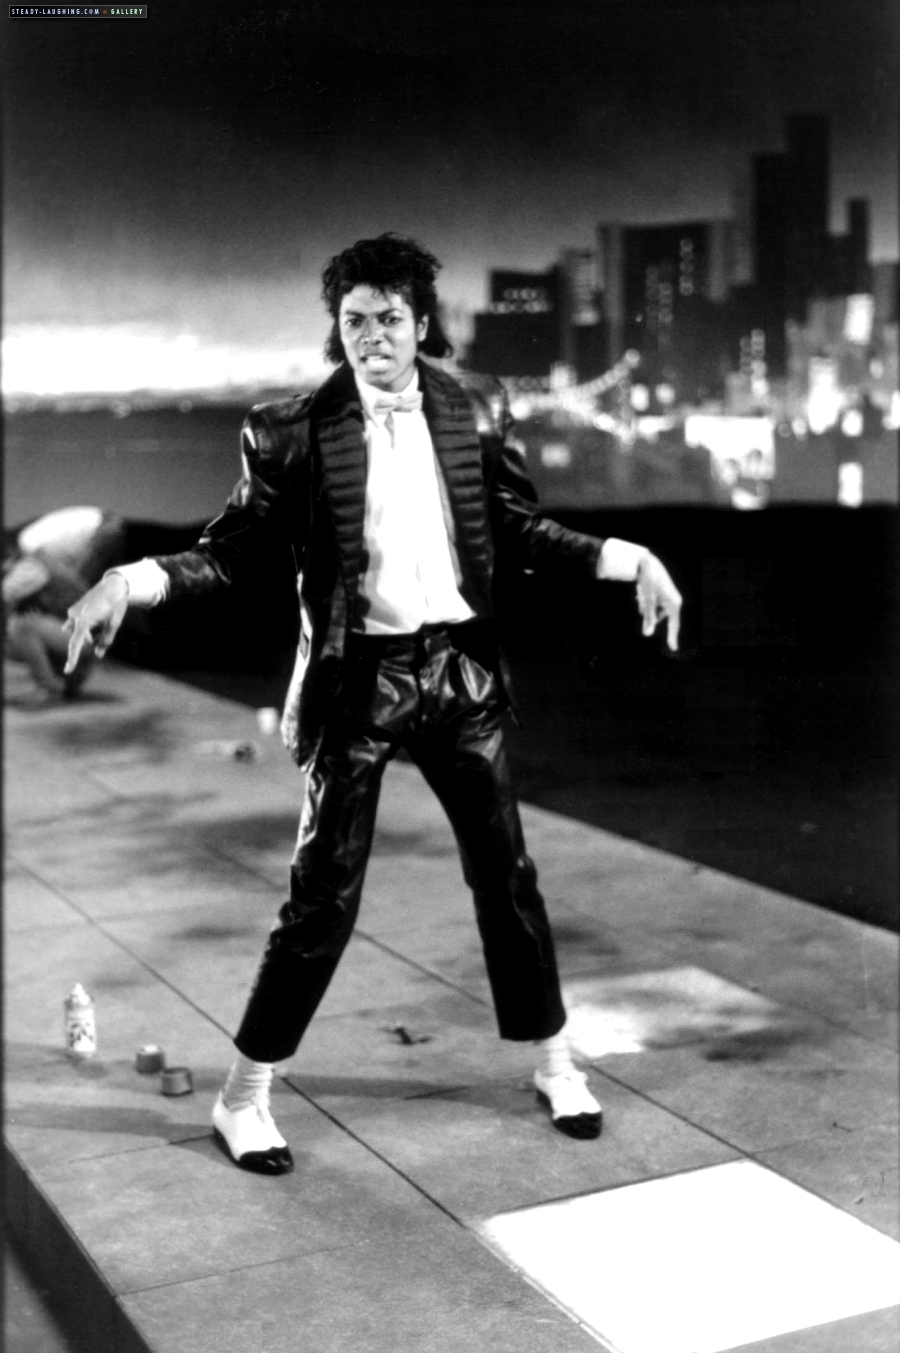 http://images2.fanpop.com/images/photos/7300000/Videoshoots-Billie-Jean-Set-michael-jackson-7349405-900-1353.jpg